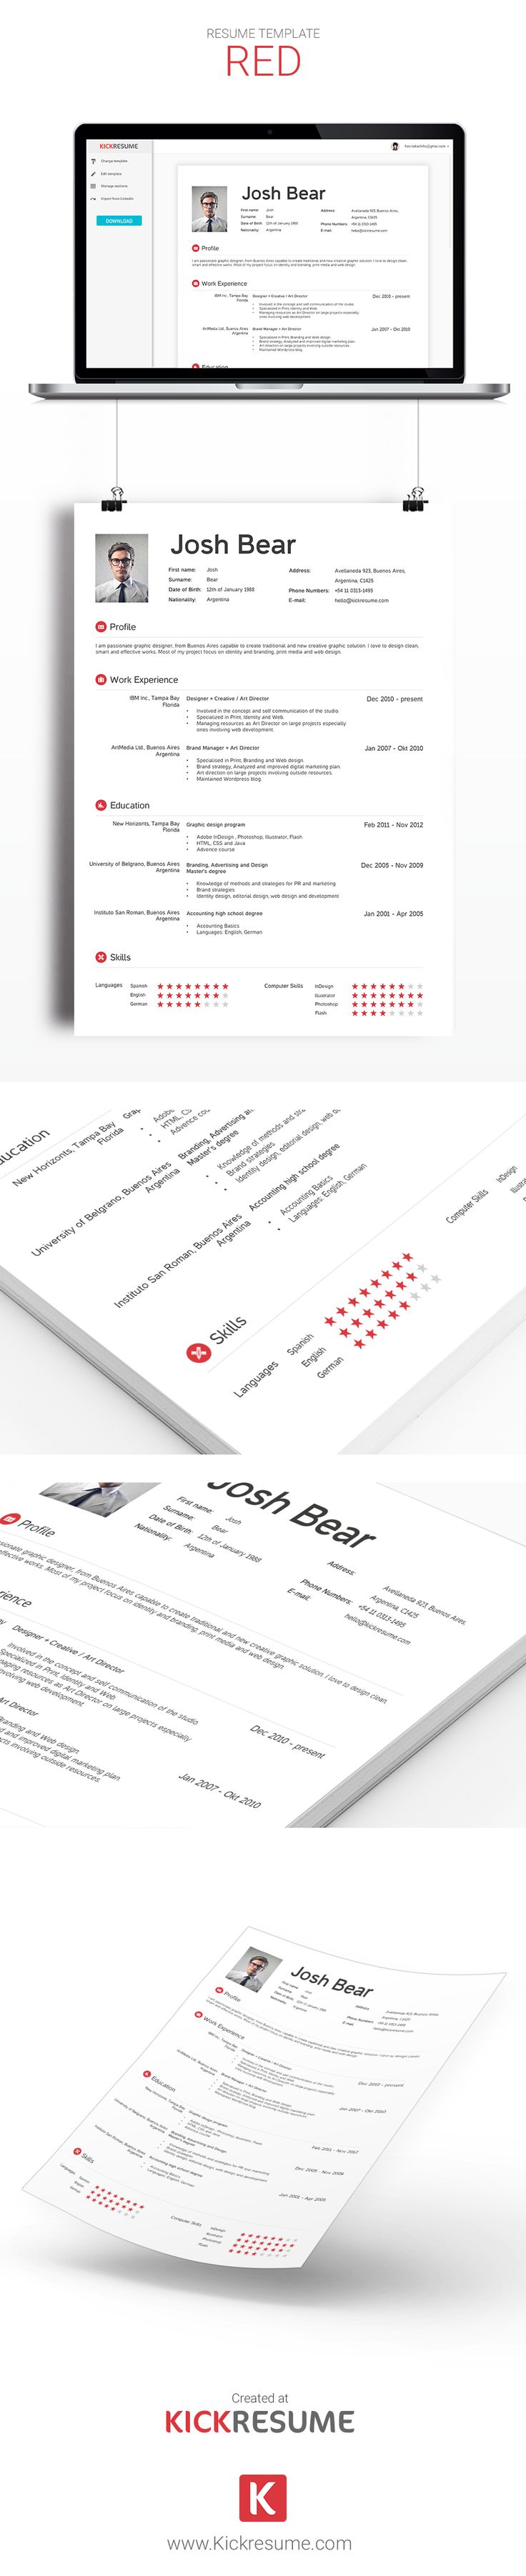 17 best images about kickresume templates gallery resume samples create beautiful resumes in minutes kickresume sample resume template resume design creative resume resume online